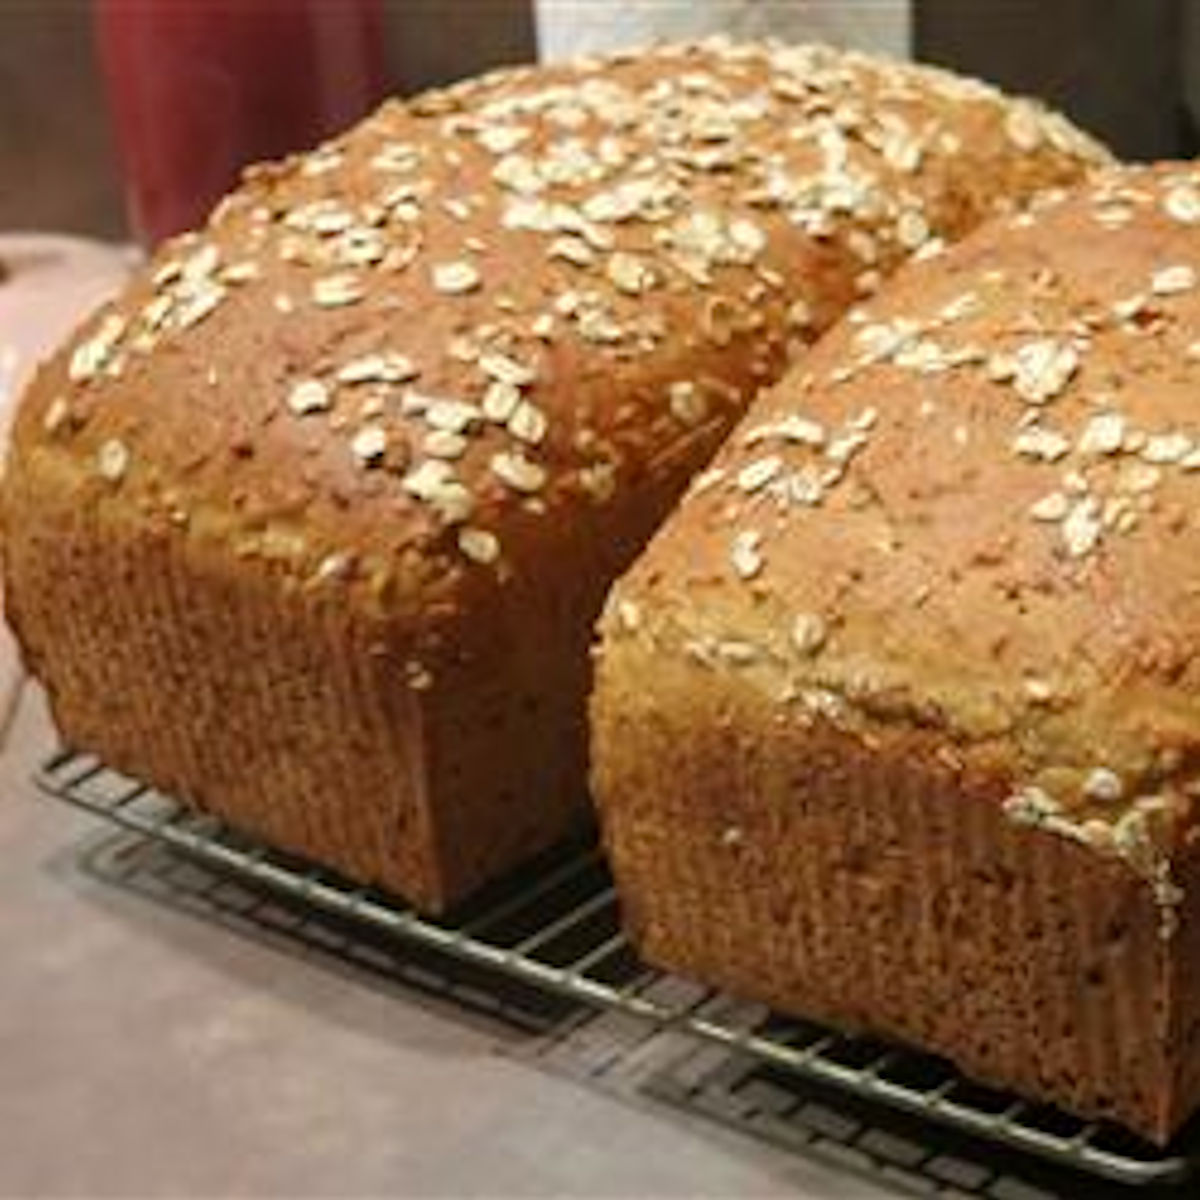 Whole Wheat and Steel-Cut Oats Bread - A Long-Fermentation Bread judy2304